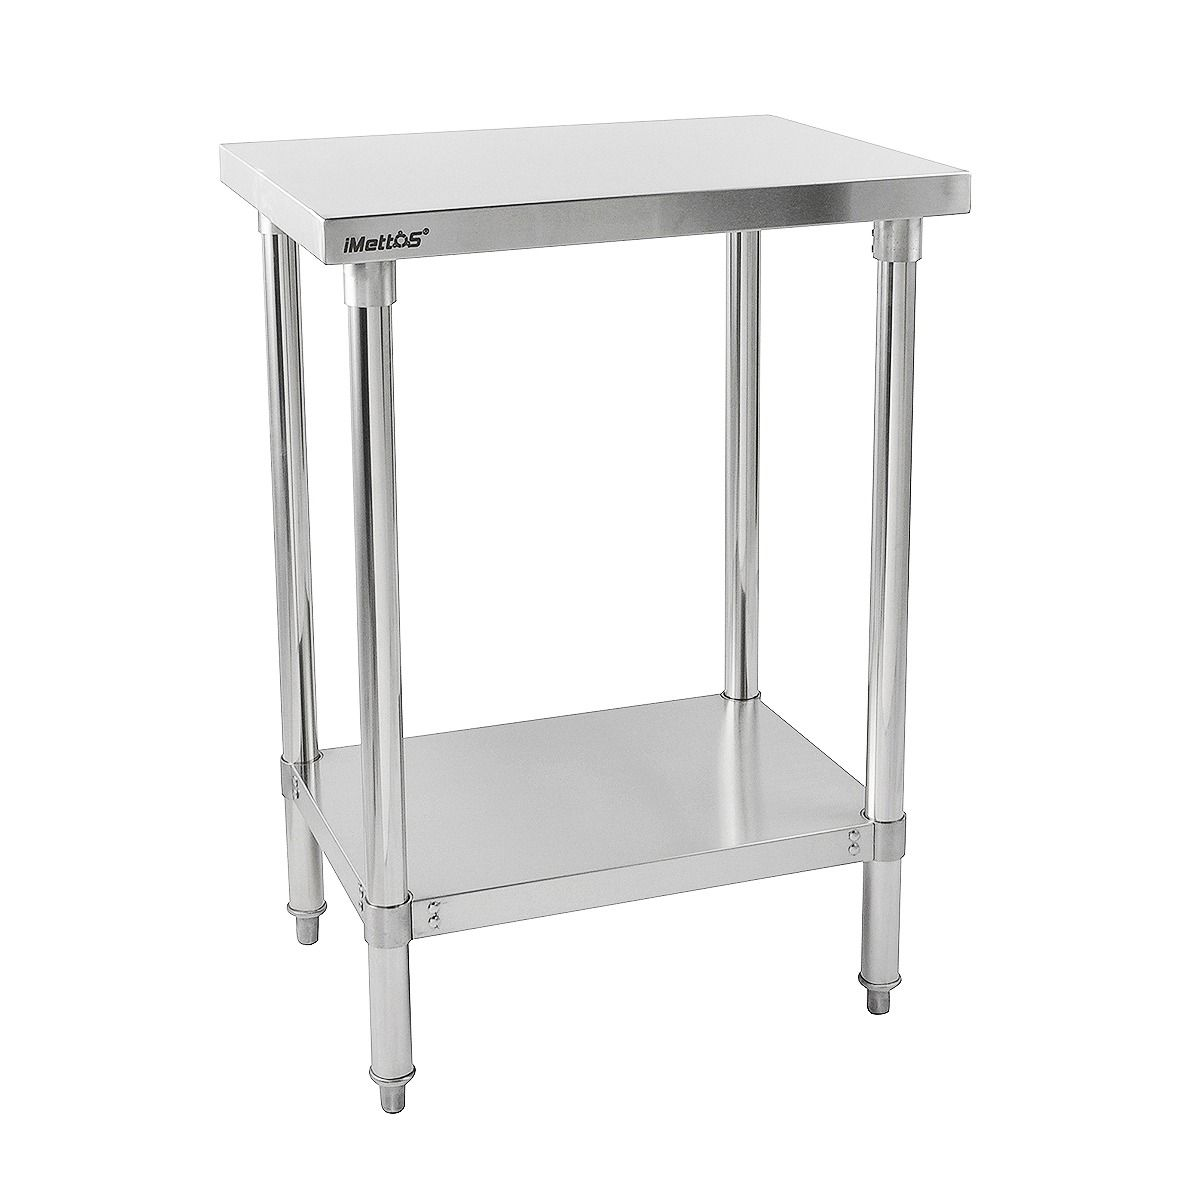 iMettos Stainless Steel Prep Table Width 600mm - 141001